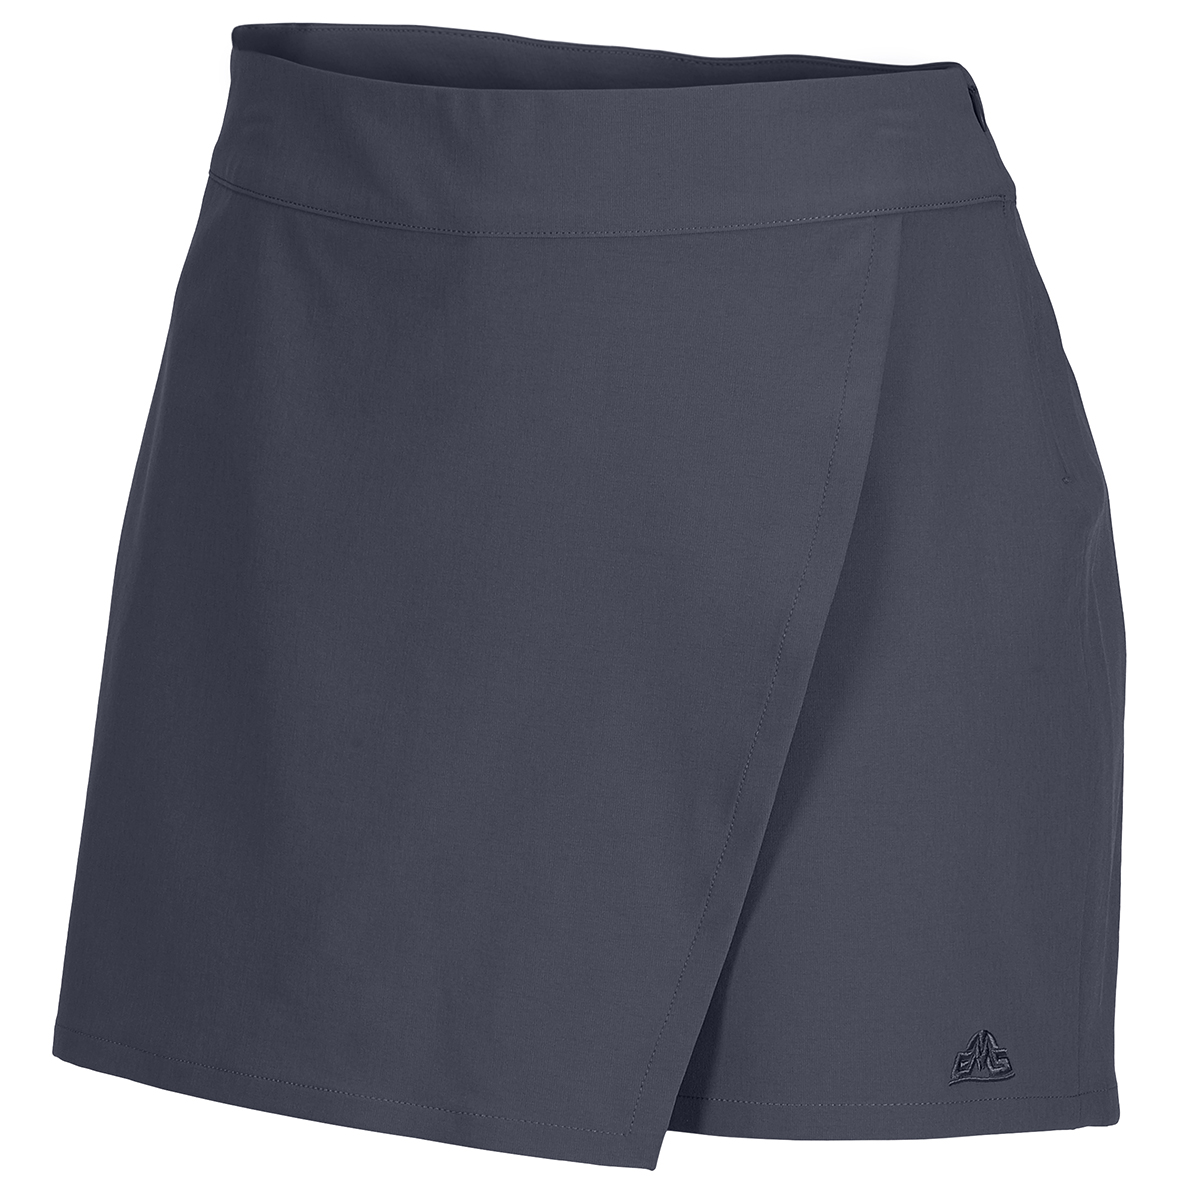 Ems Women's Aspire Skort - White, 2